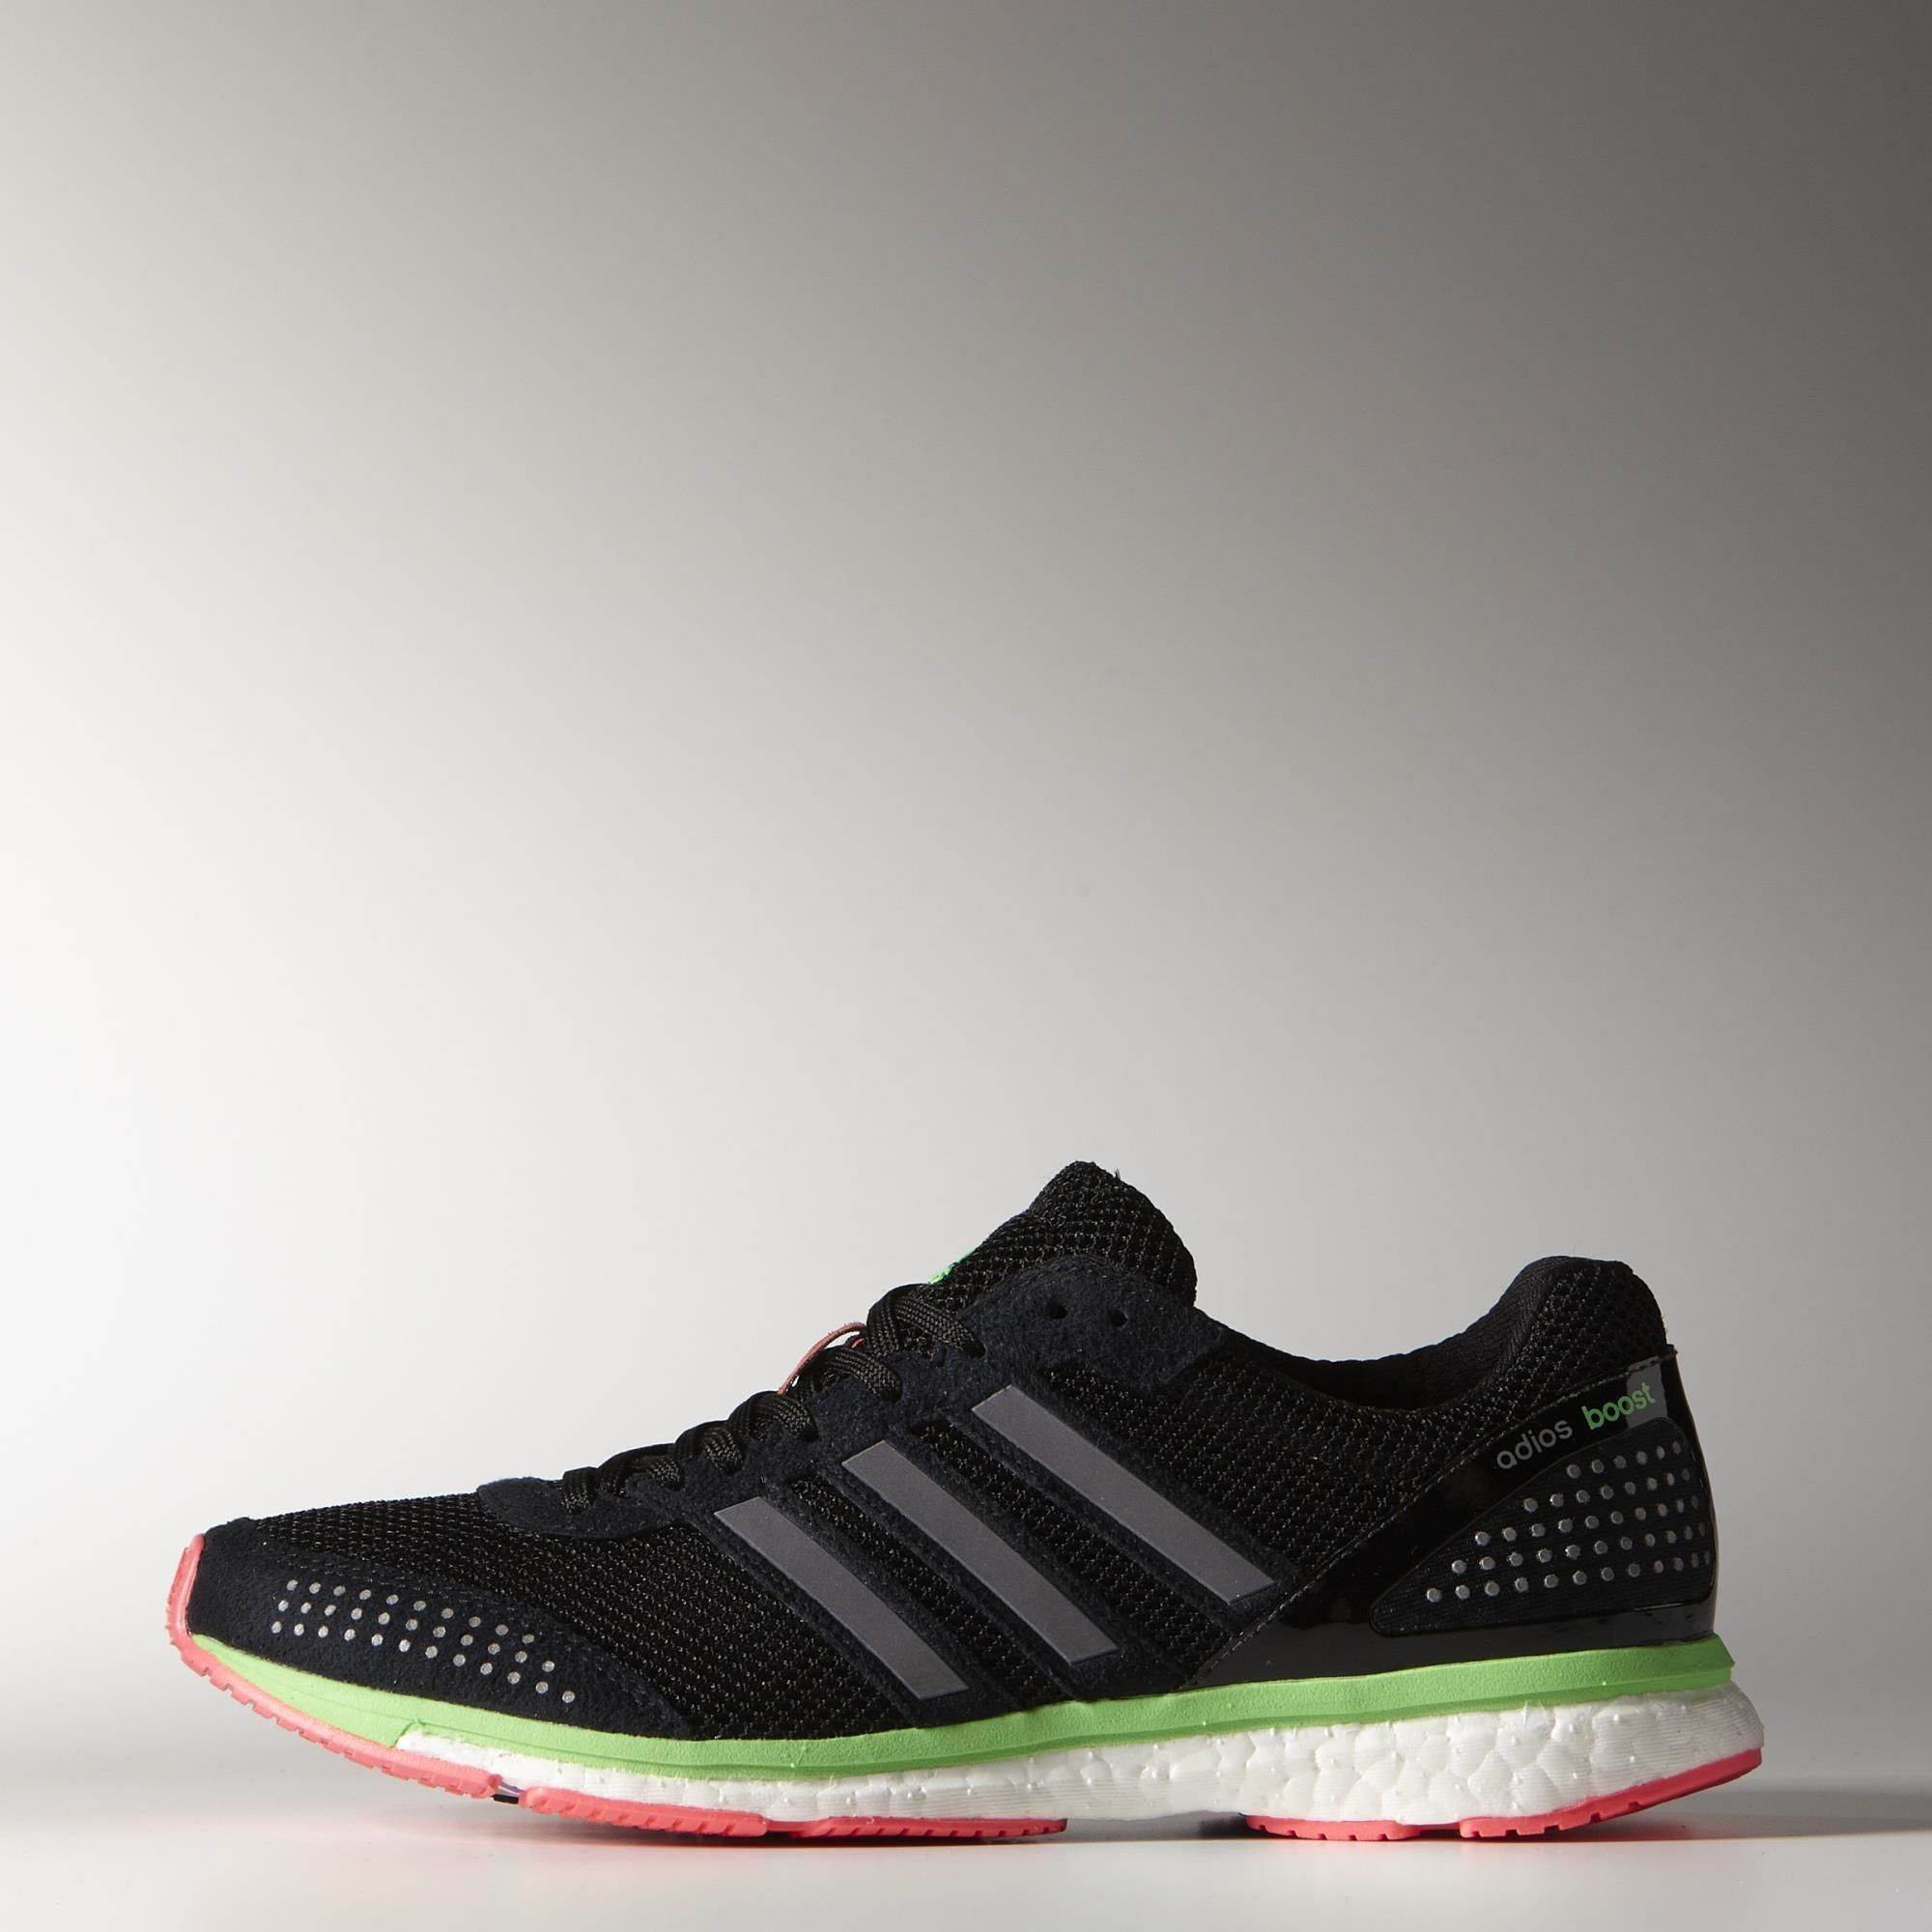 Boost Adidas Shoes Adizero Adios 0 SchuhBags And 2 uFTc3l15KJ